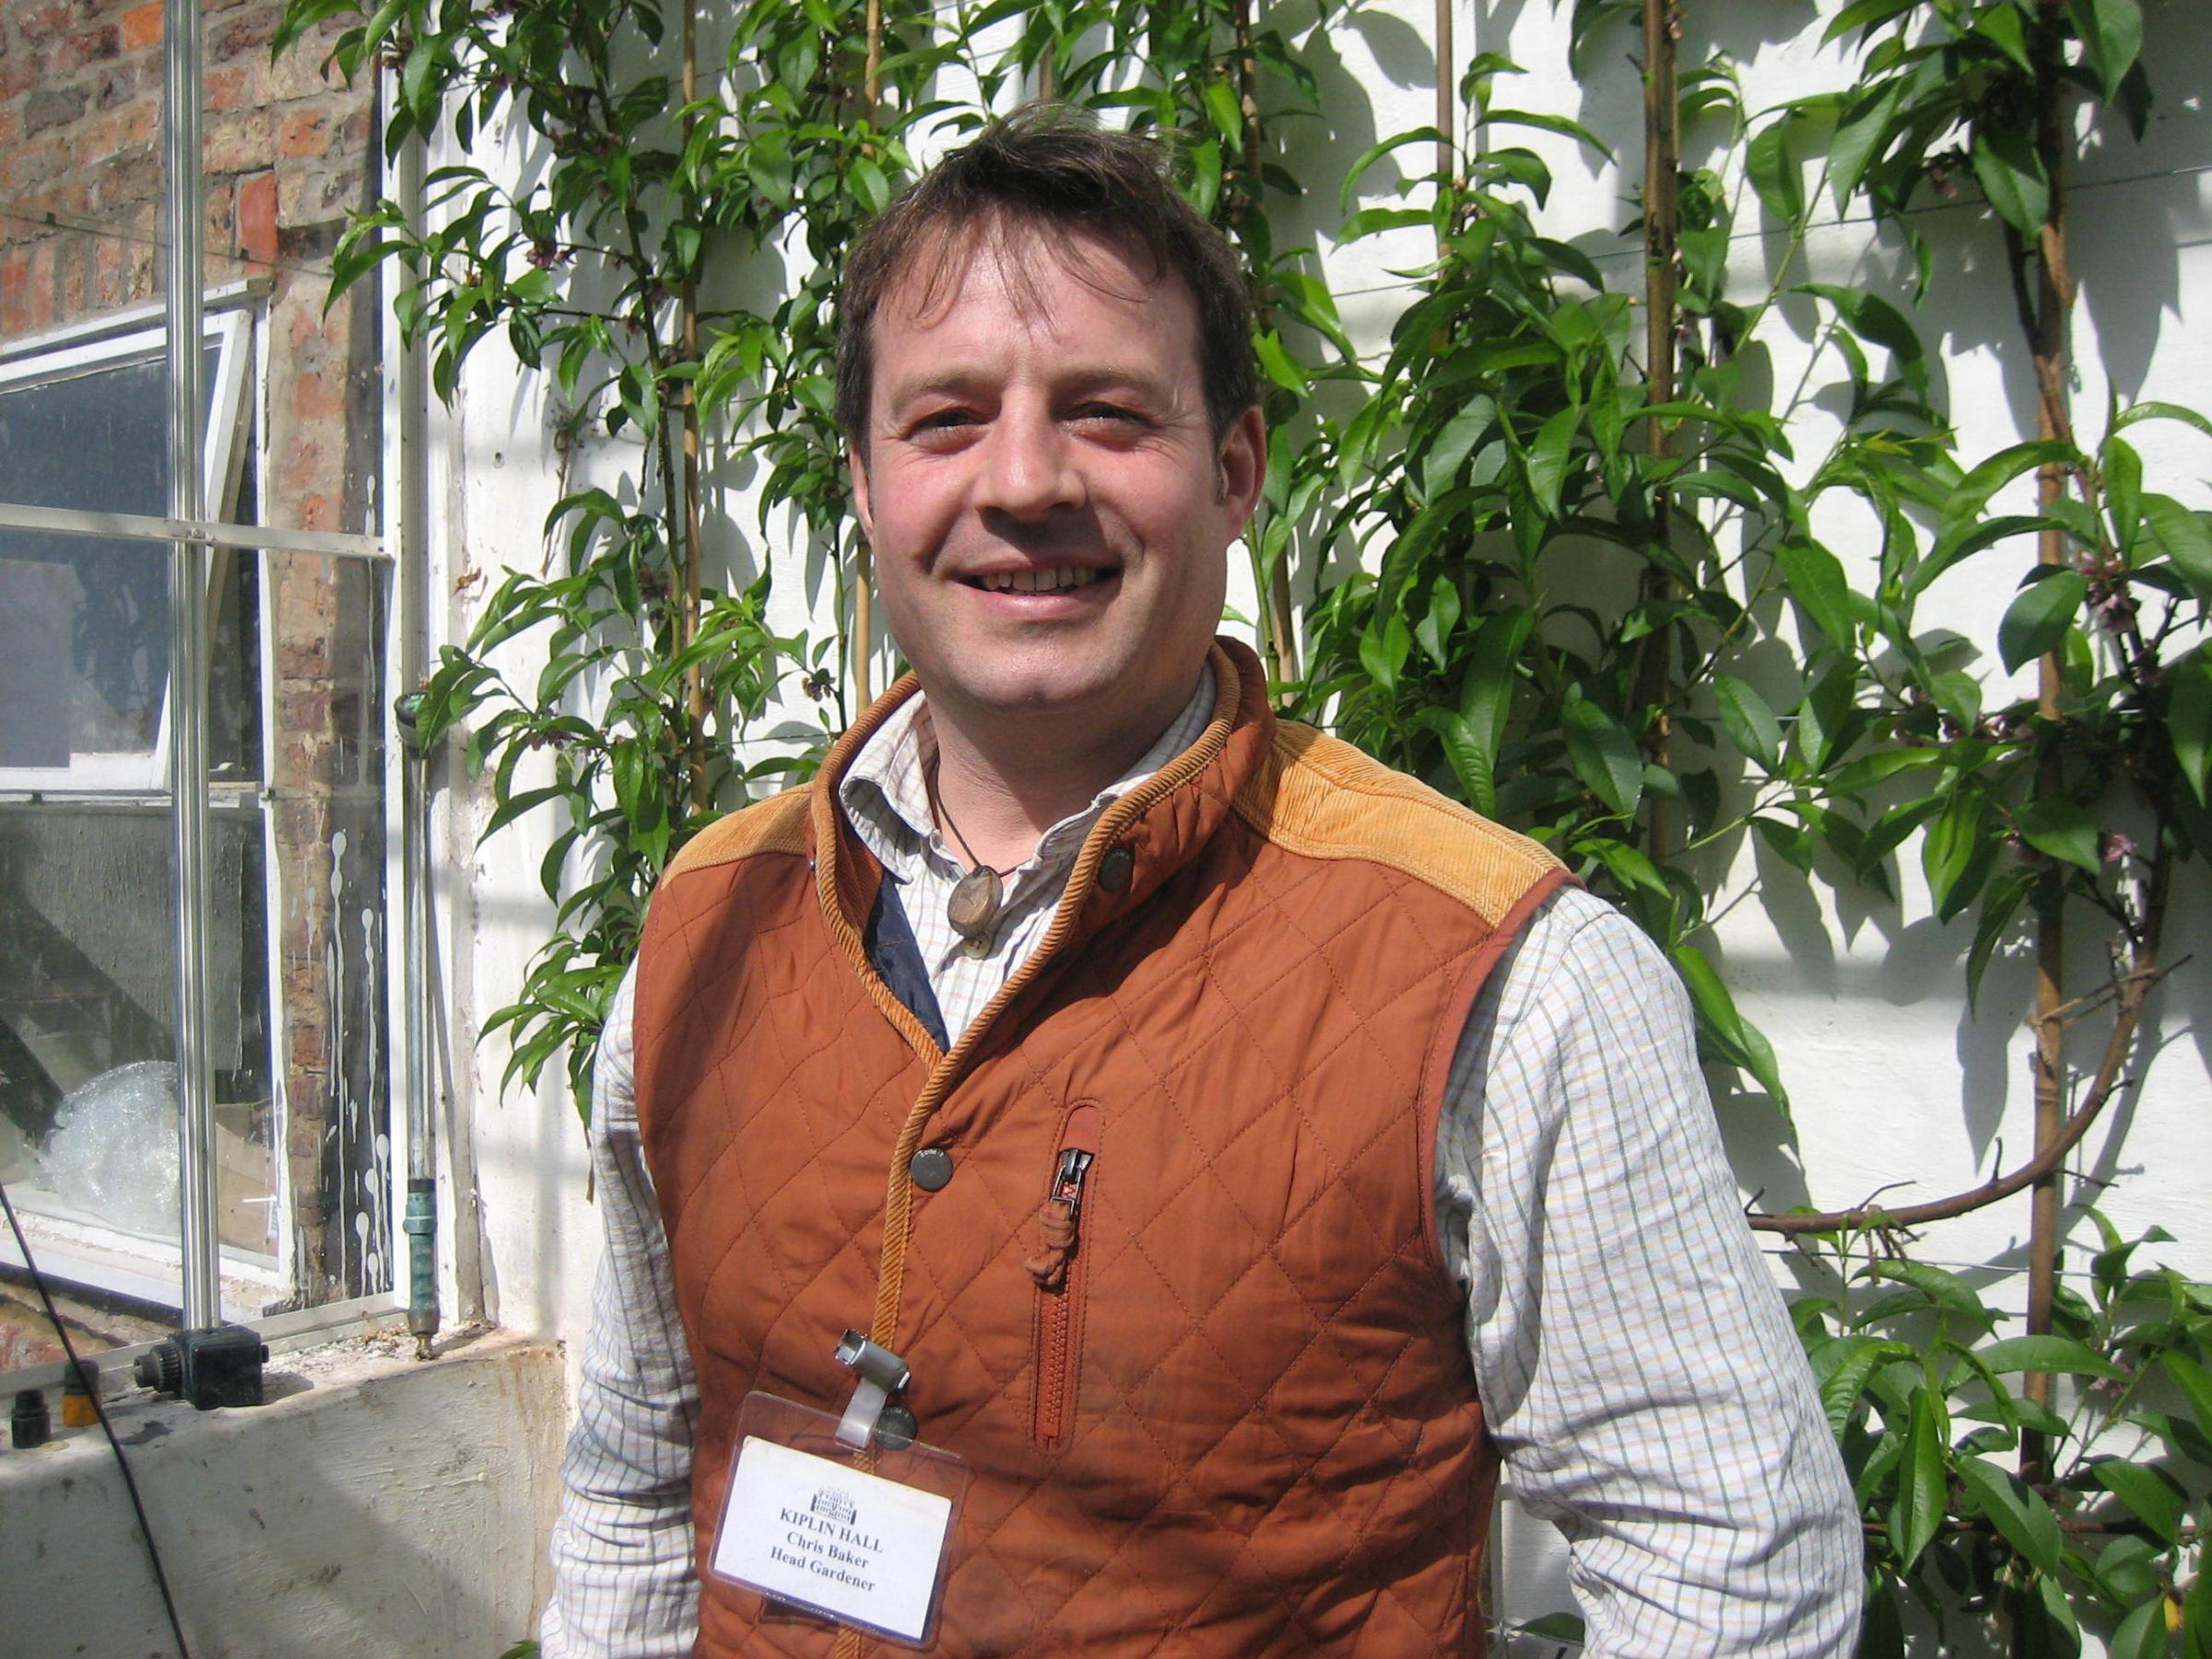 GREEN FINGERS: Head gardener Chris Baker will lead the workshop.